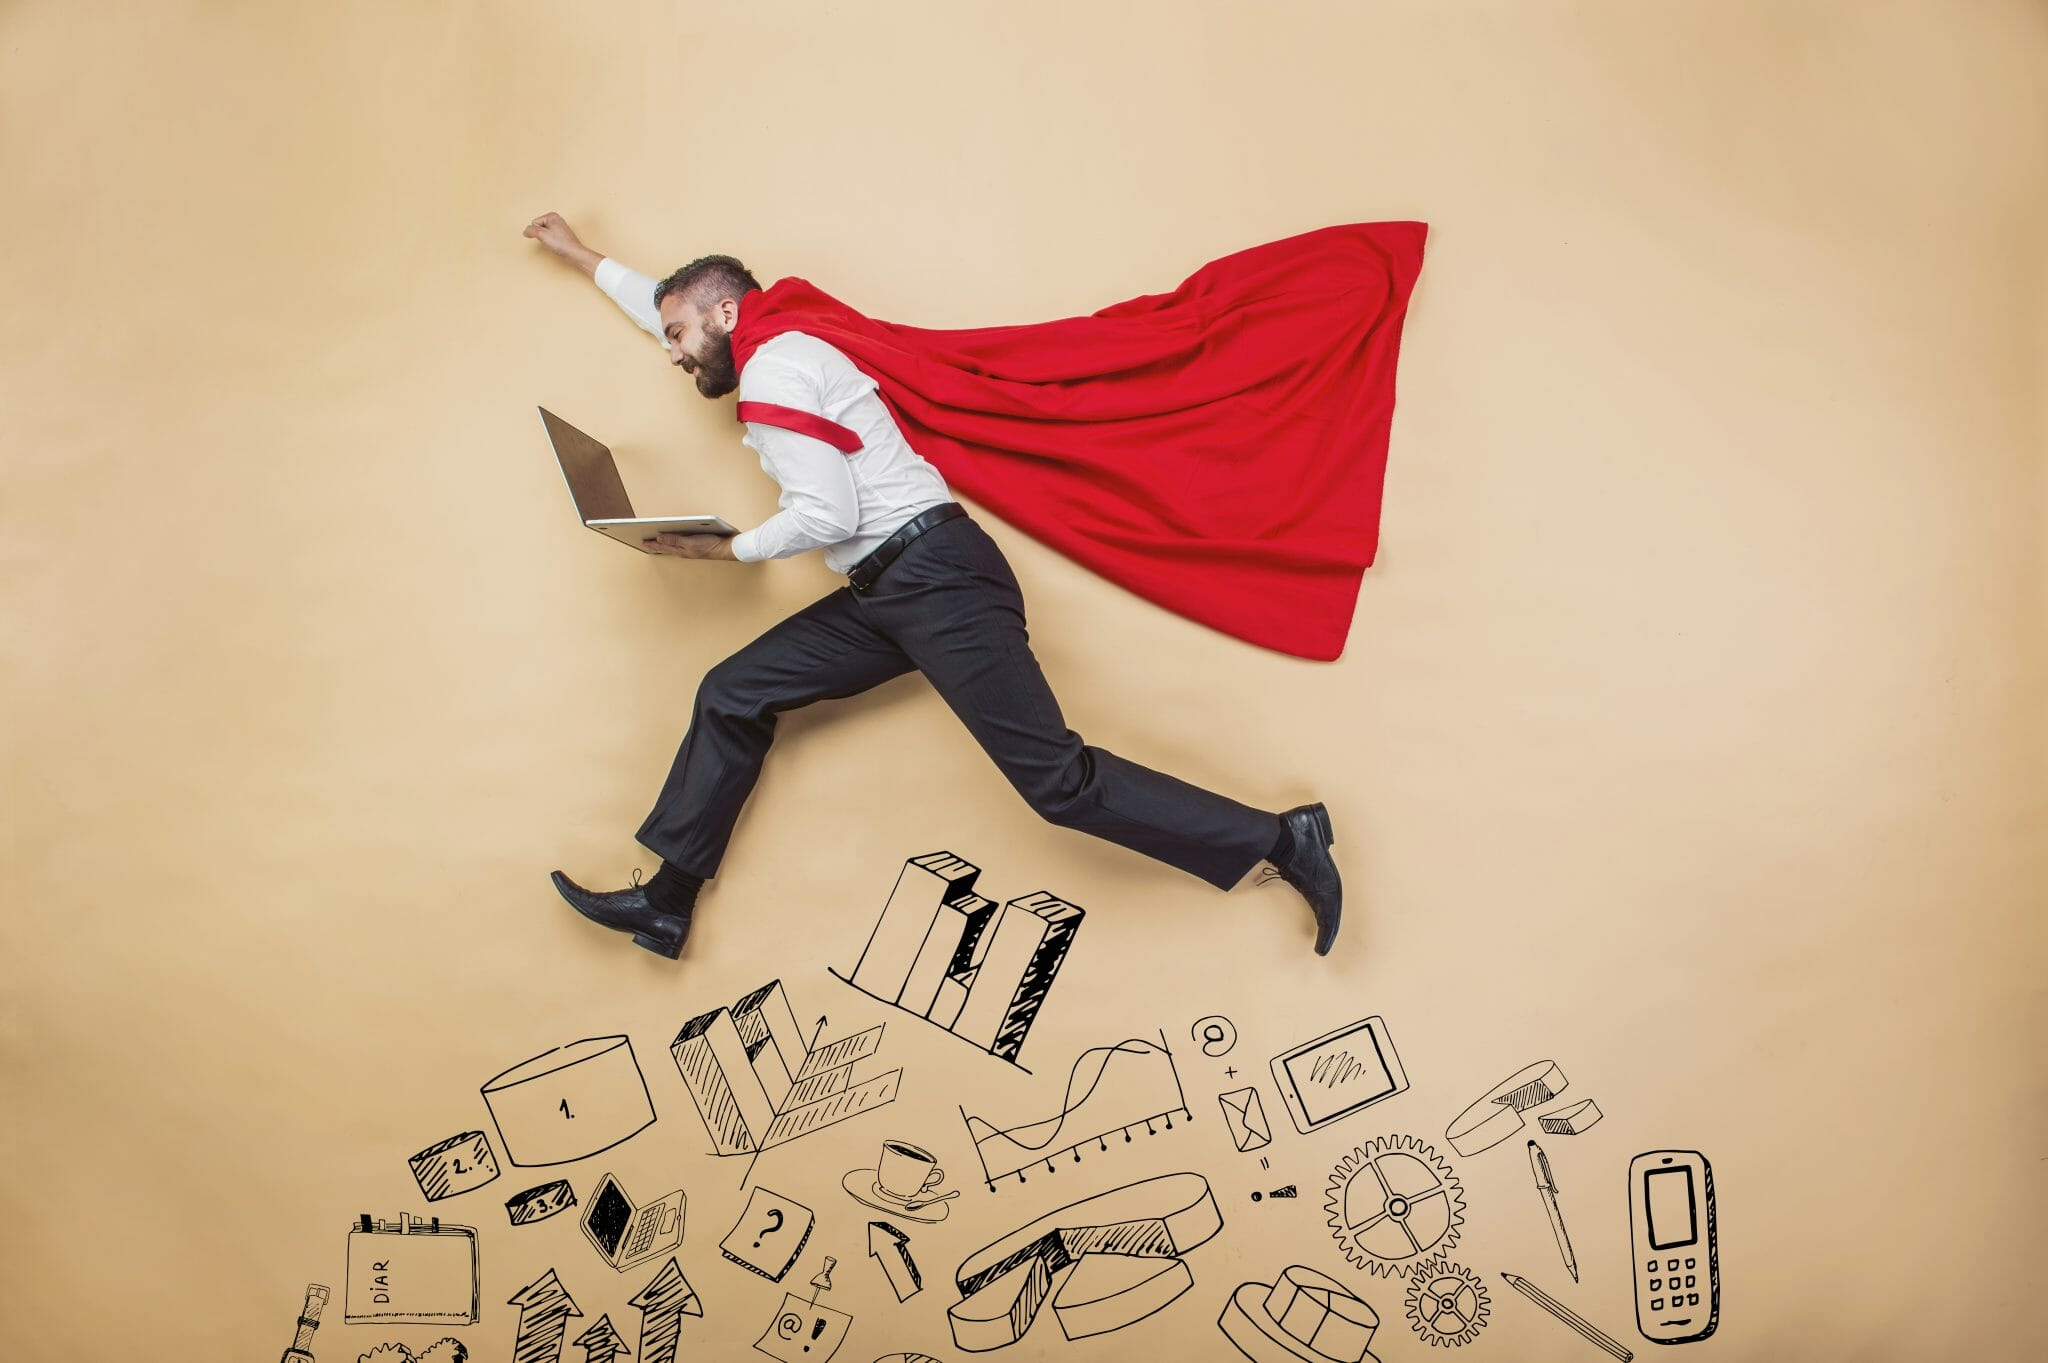 Man in cape holding computer leaping over various devleopment related graphics drawn on a wall